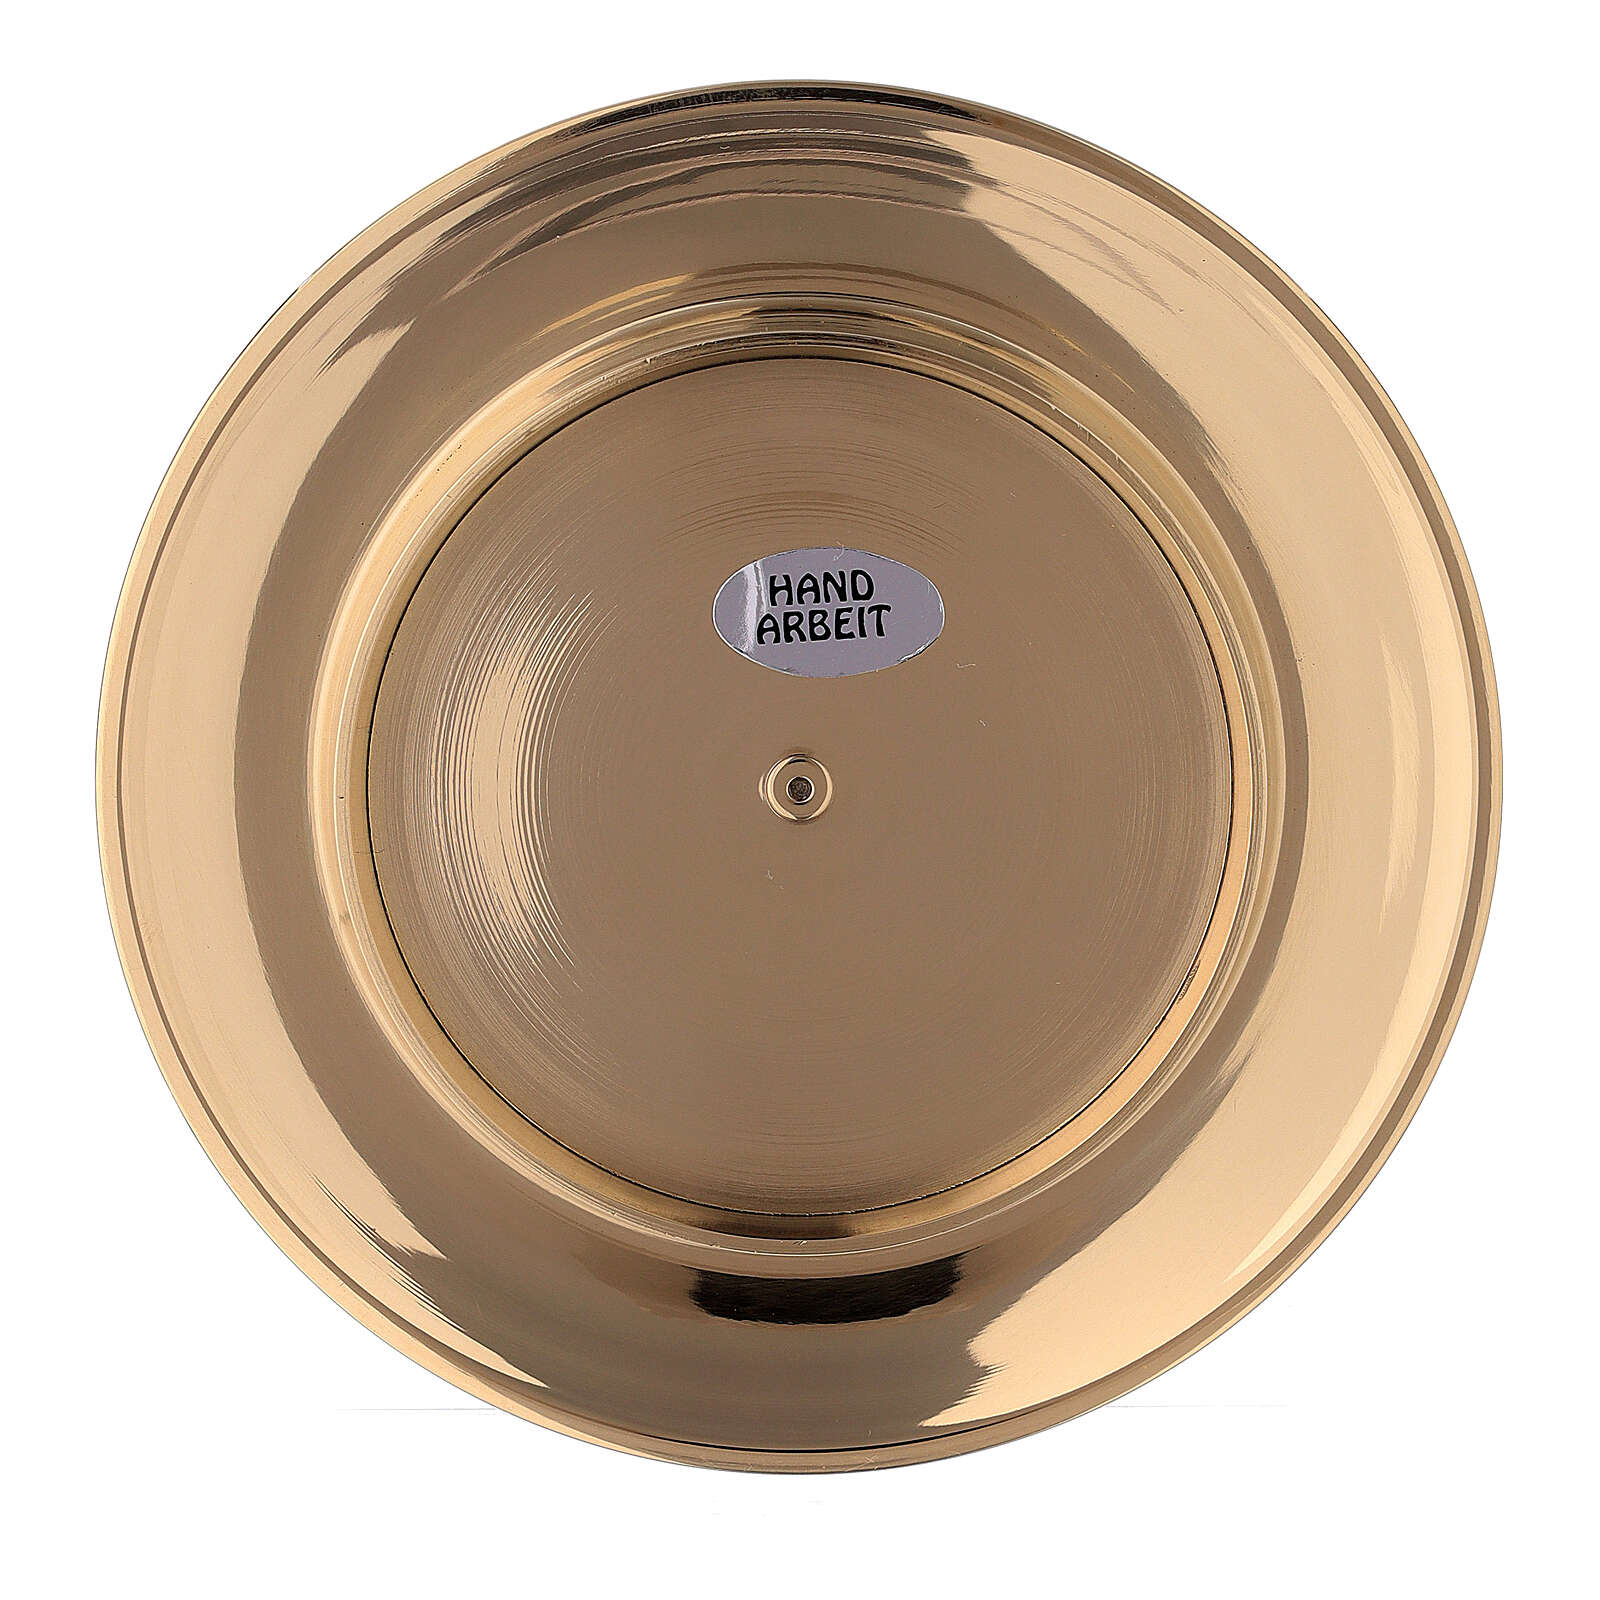 Concave candle holder plate in gold plated brass 3 in 4